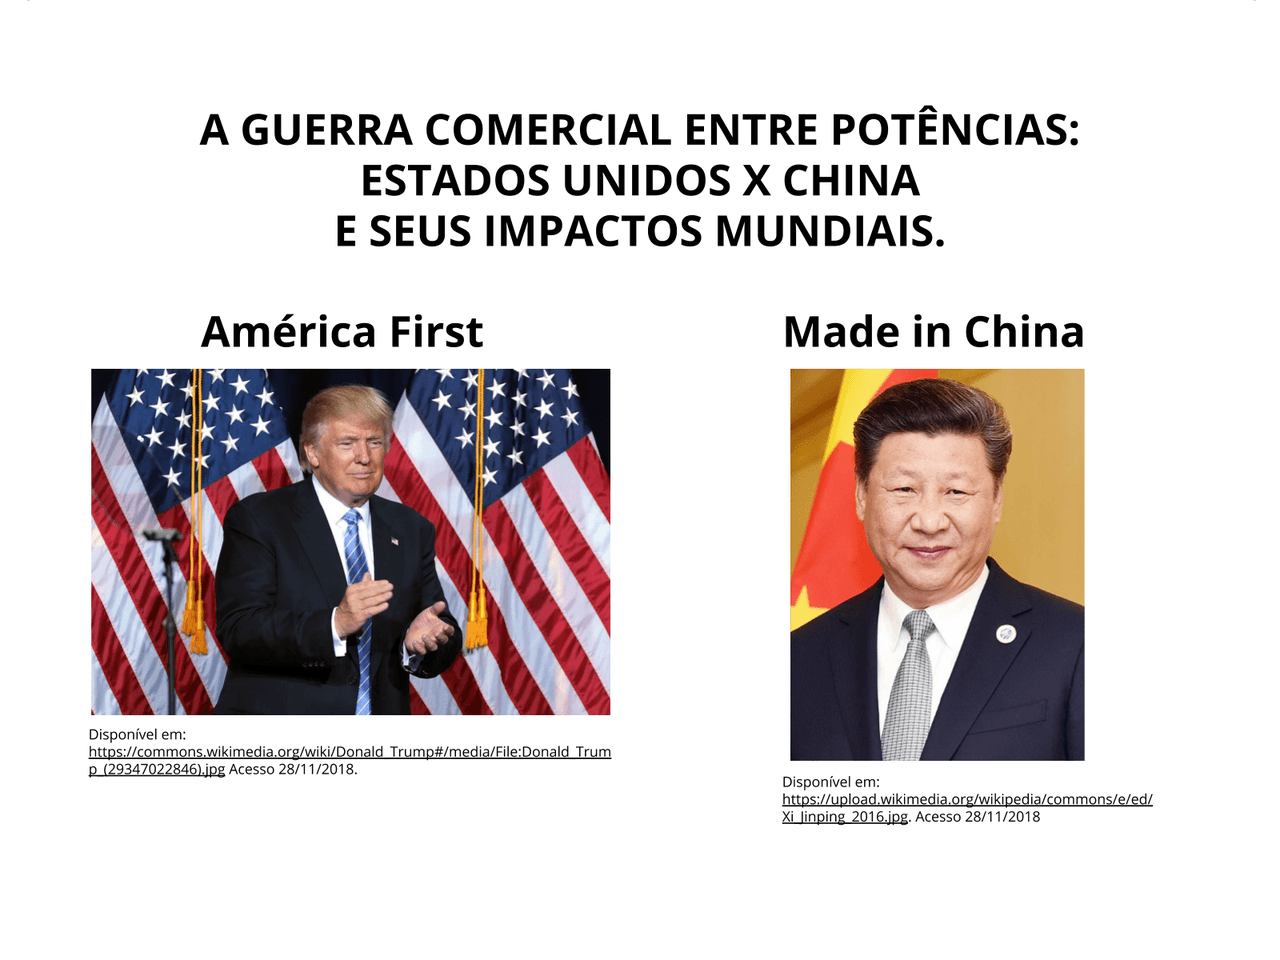 Guerra comercial entre potências:Made in China x América First""